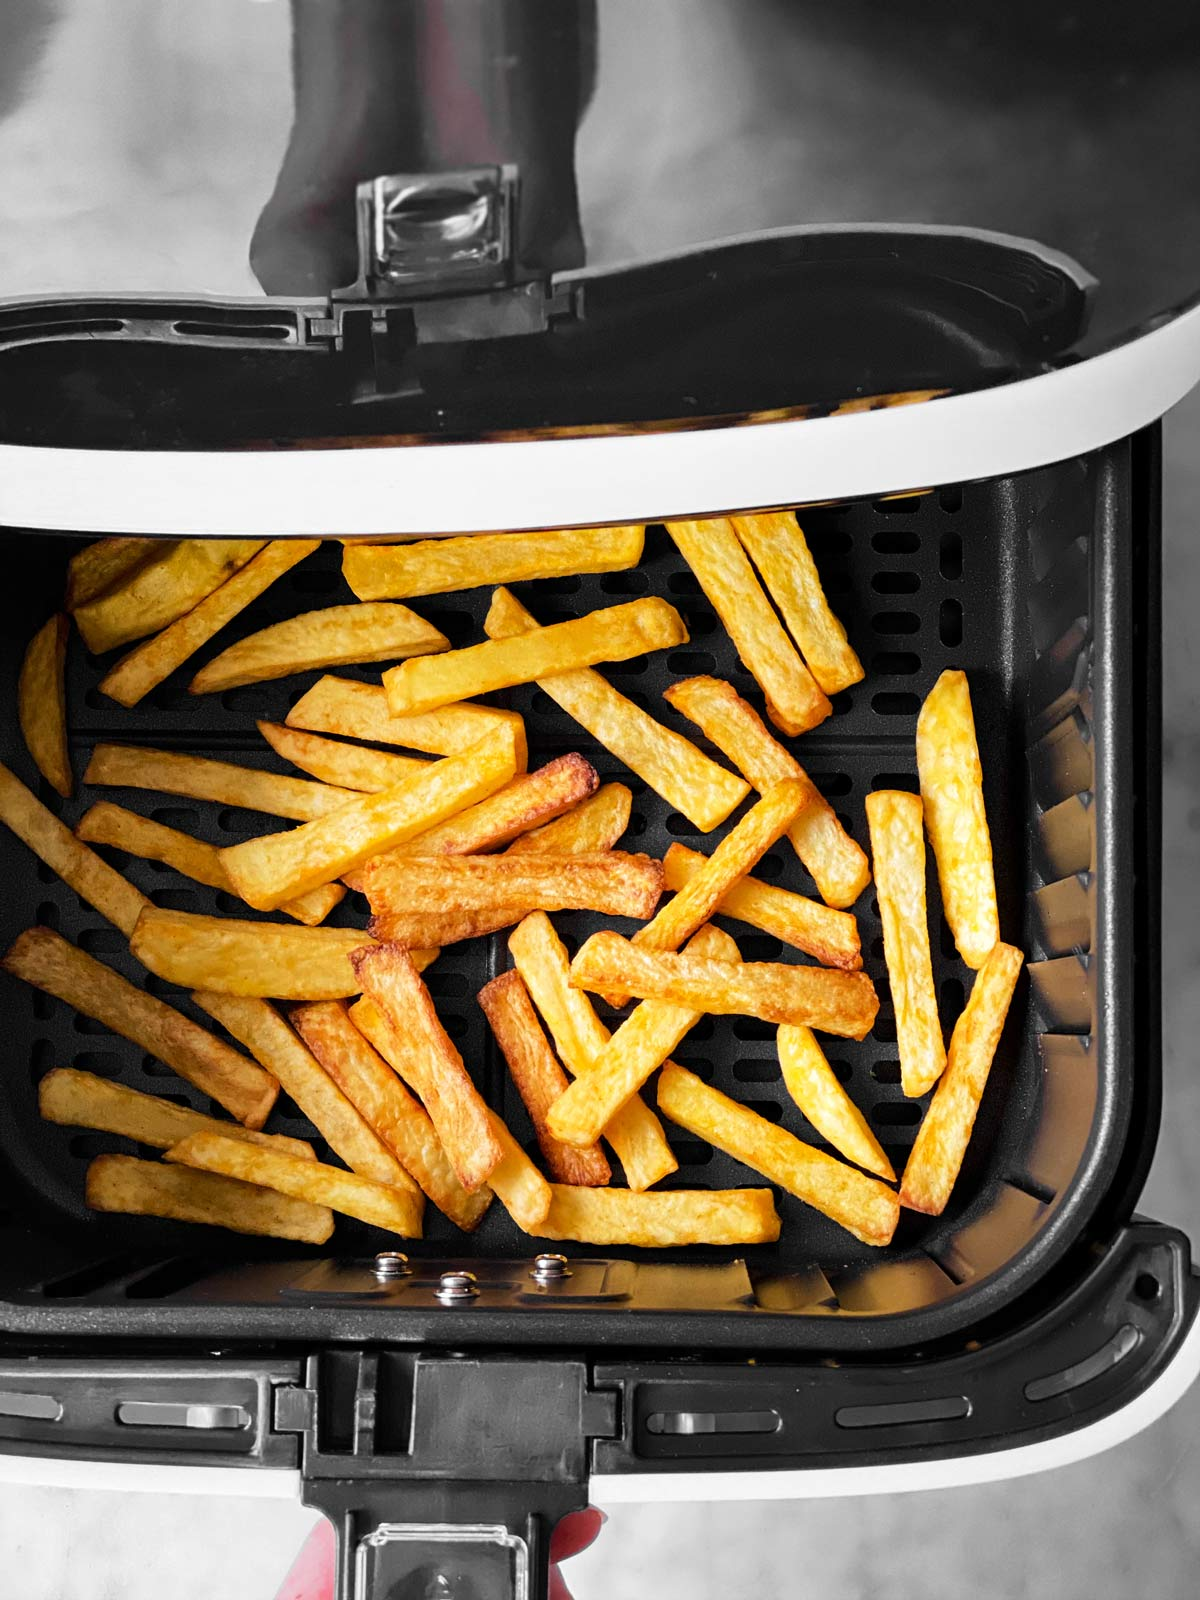 crispy French fries in air fryer basket